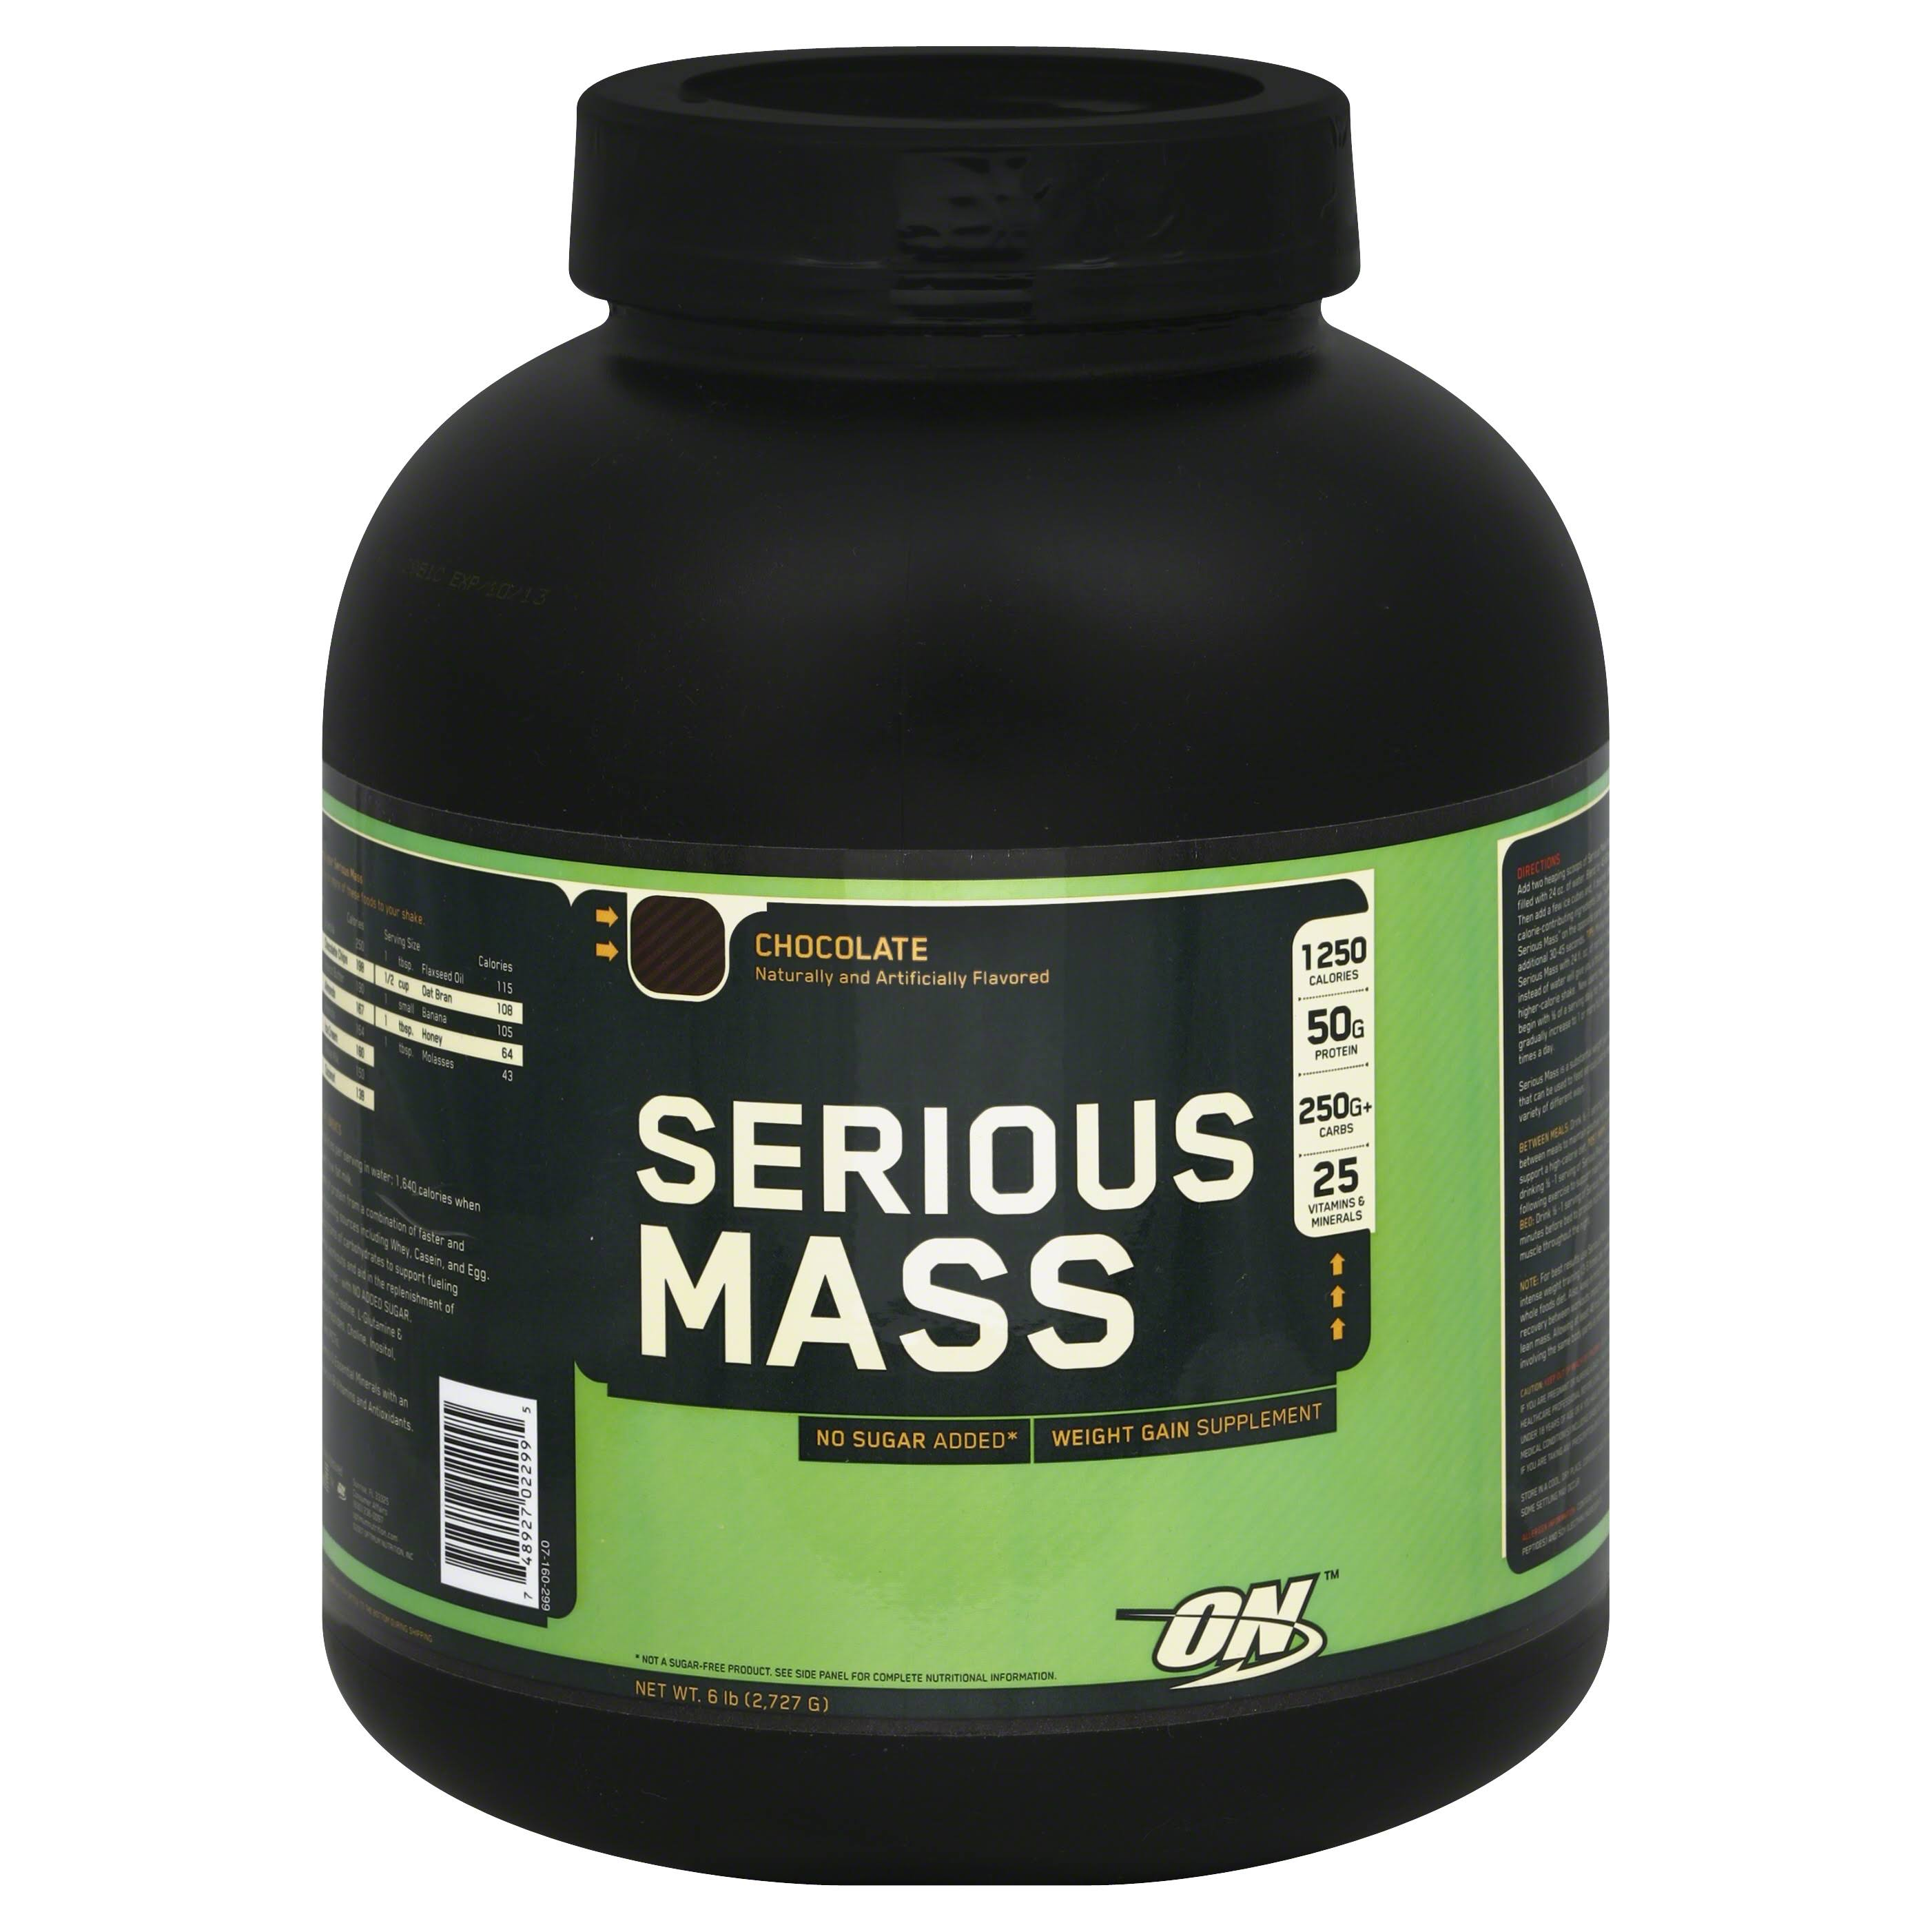 Optimum Nutrition Serious Mass Protein Powder - Chocolate Flavour, 2.73kg